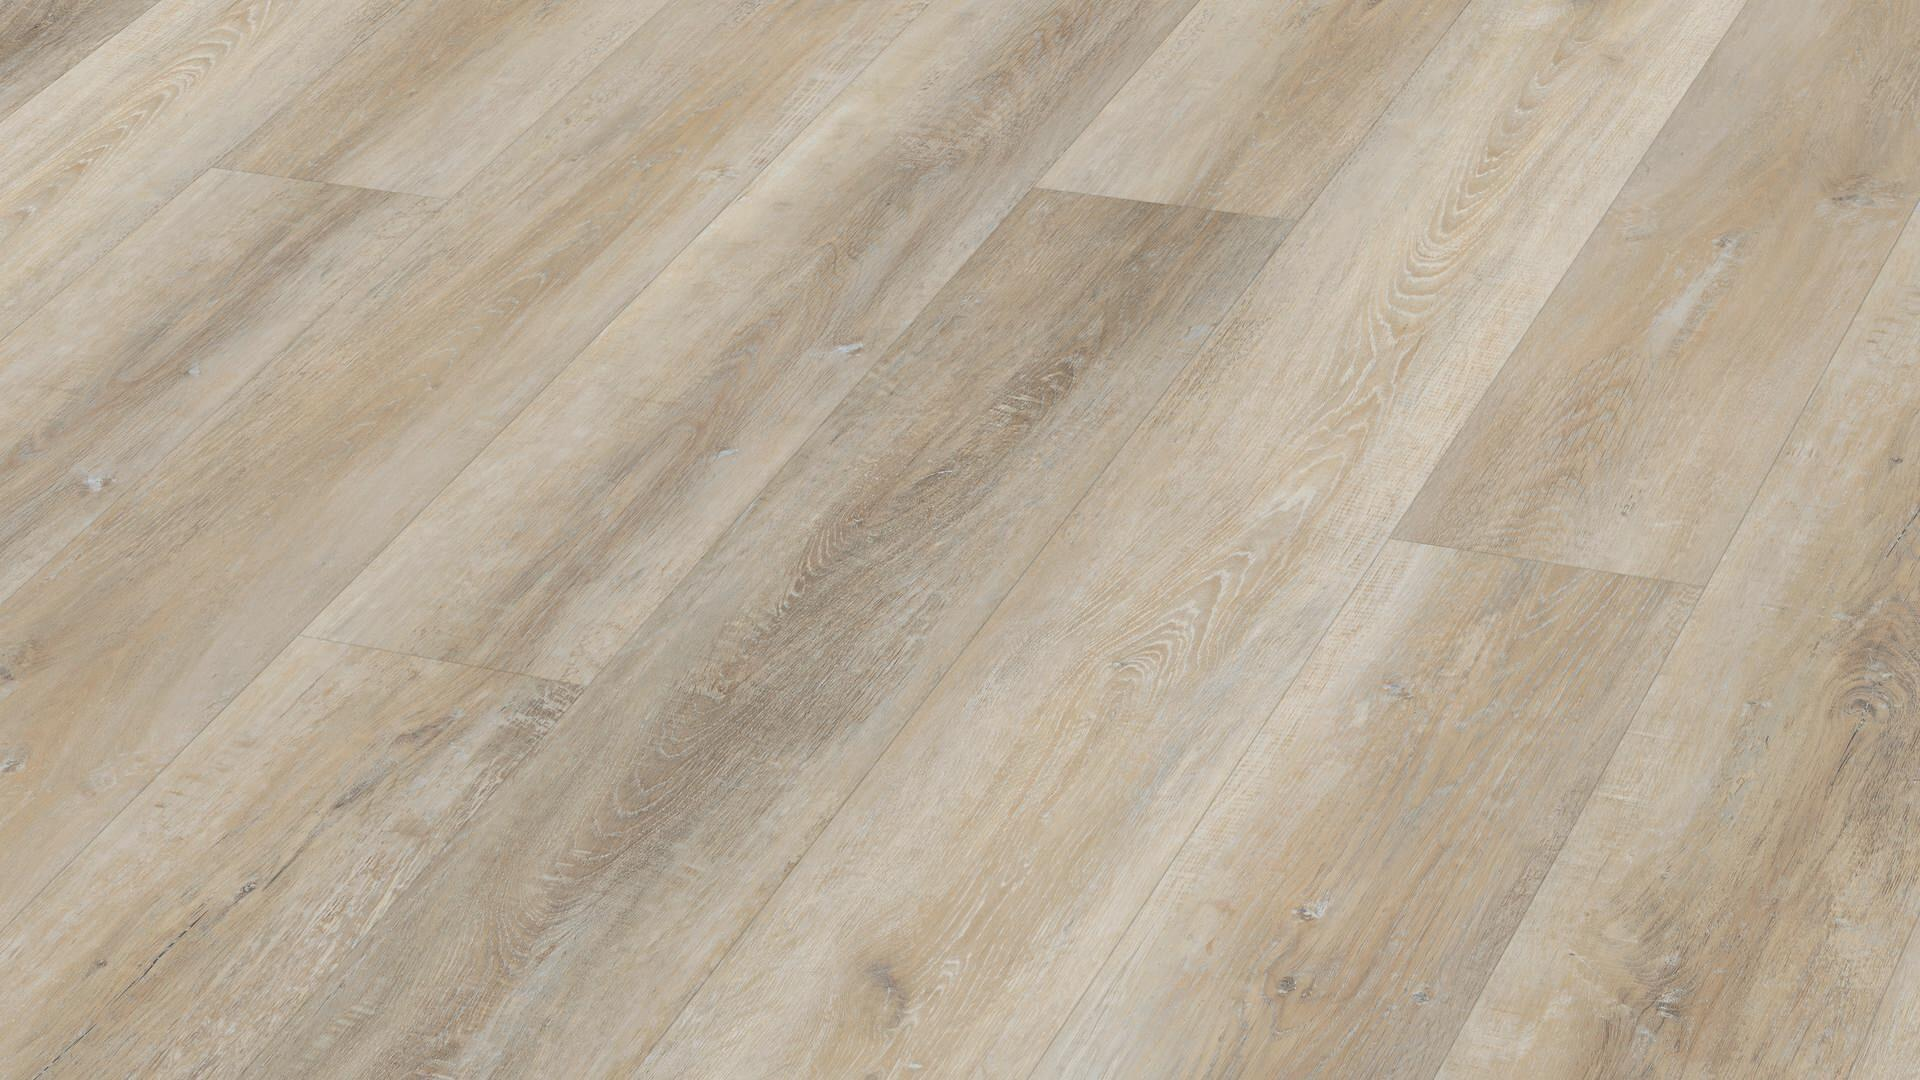 Design flooring MeisterDesign. rigid RL 400 S Ranger's choice 7406